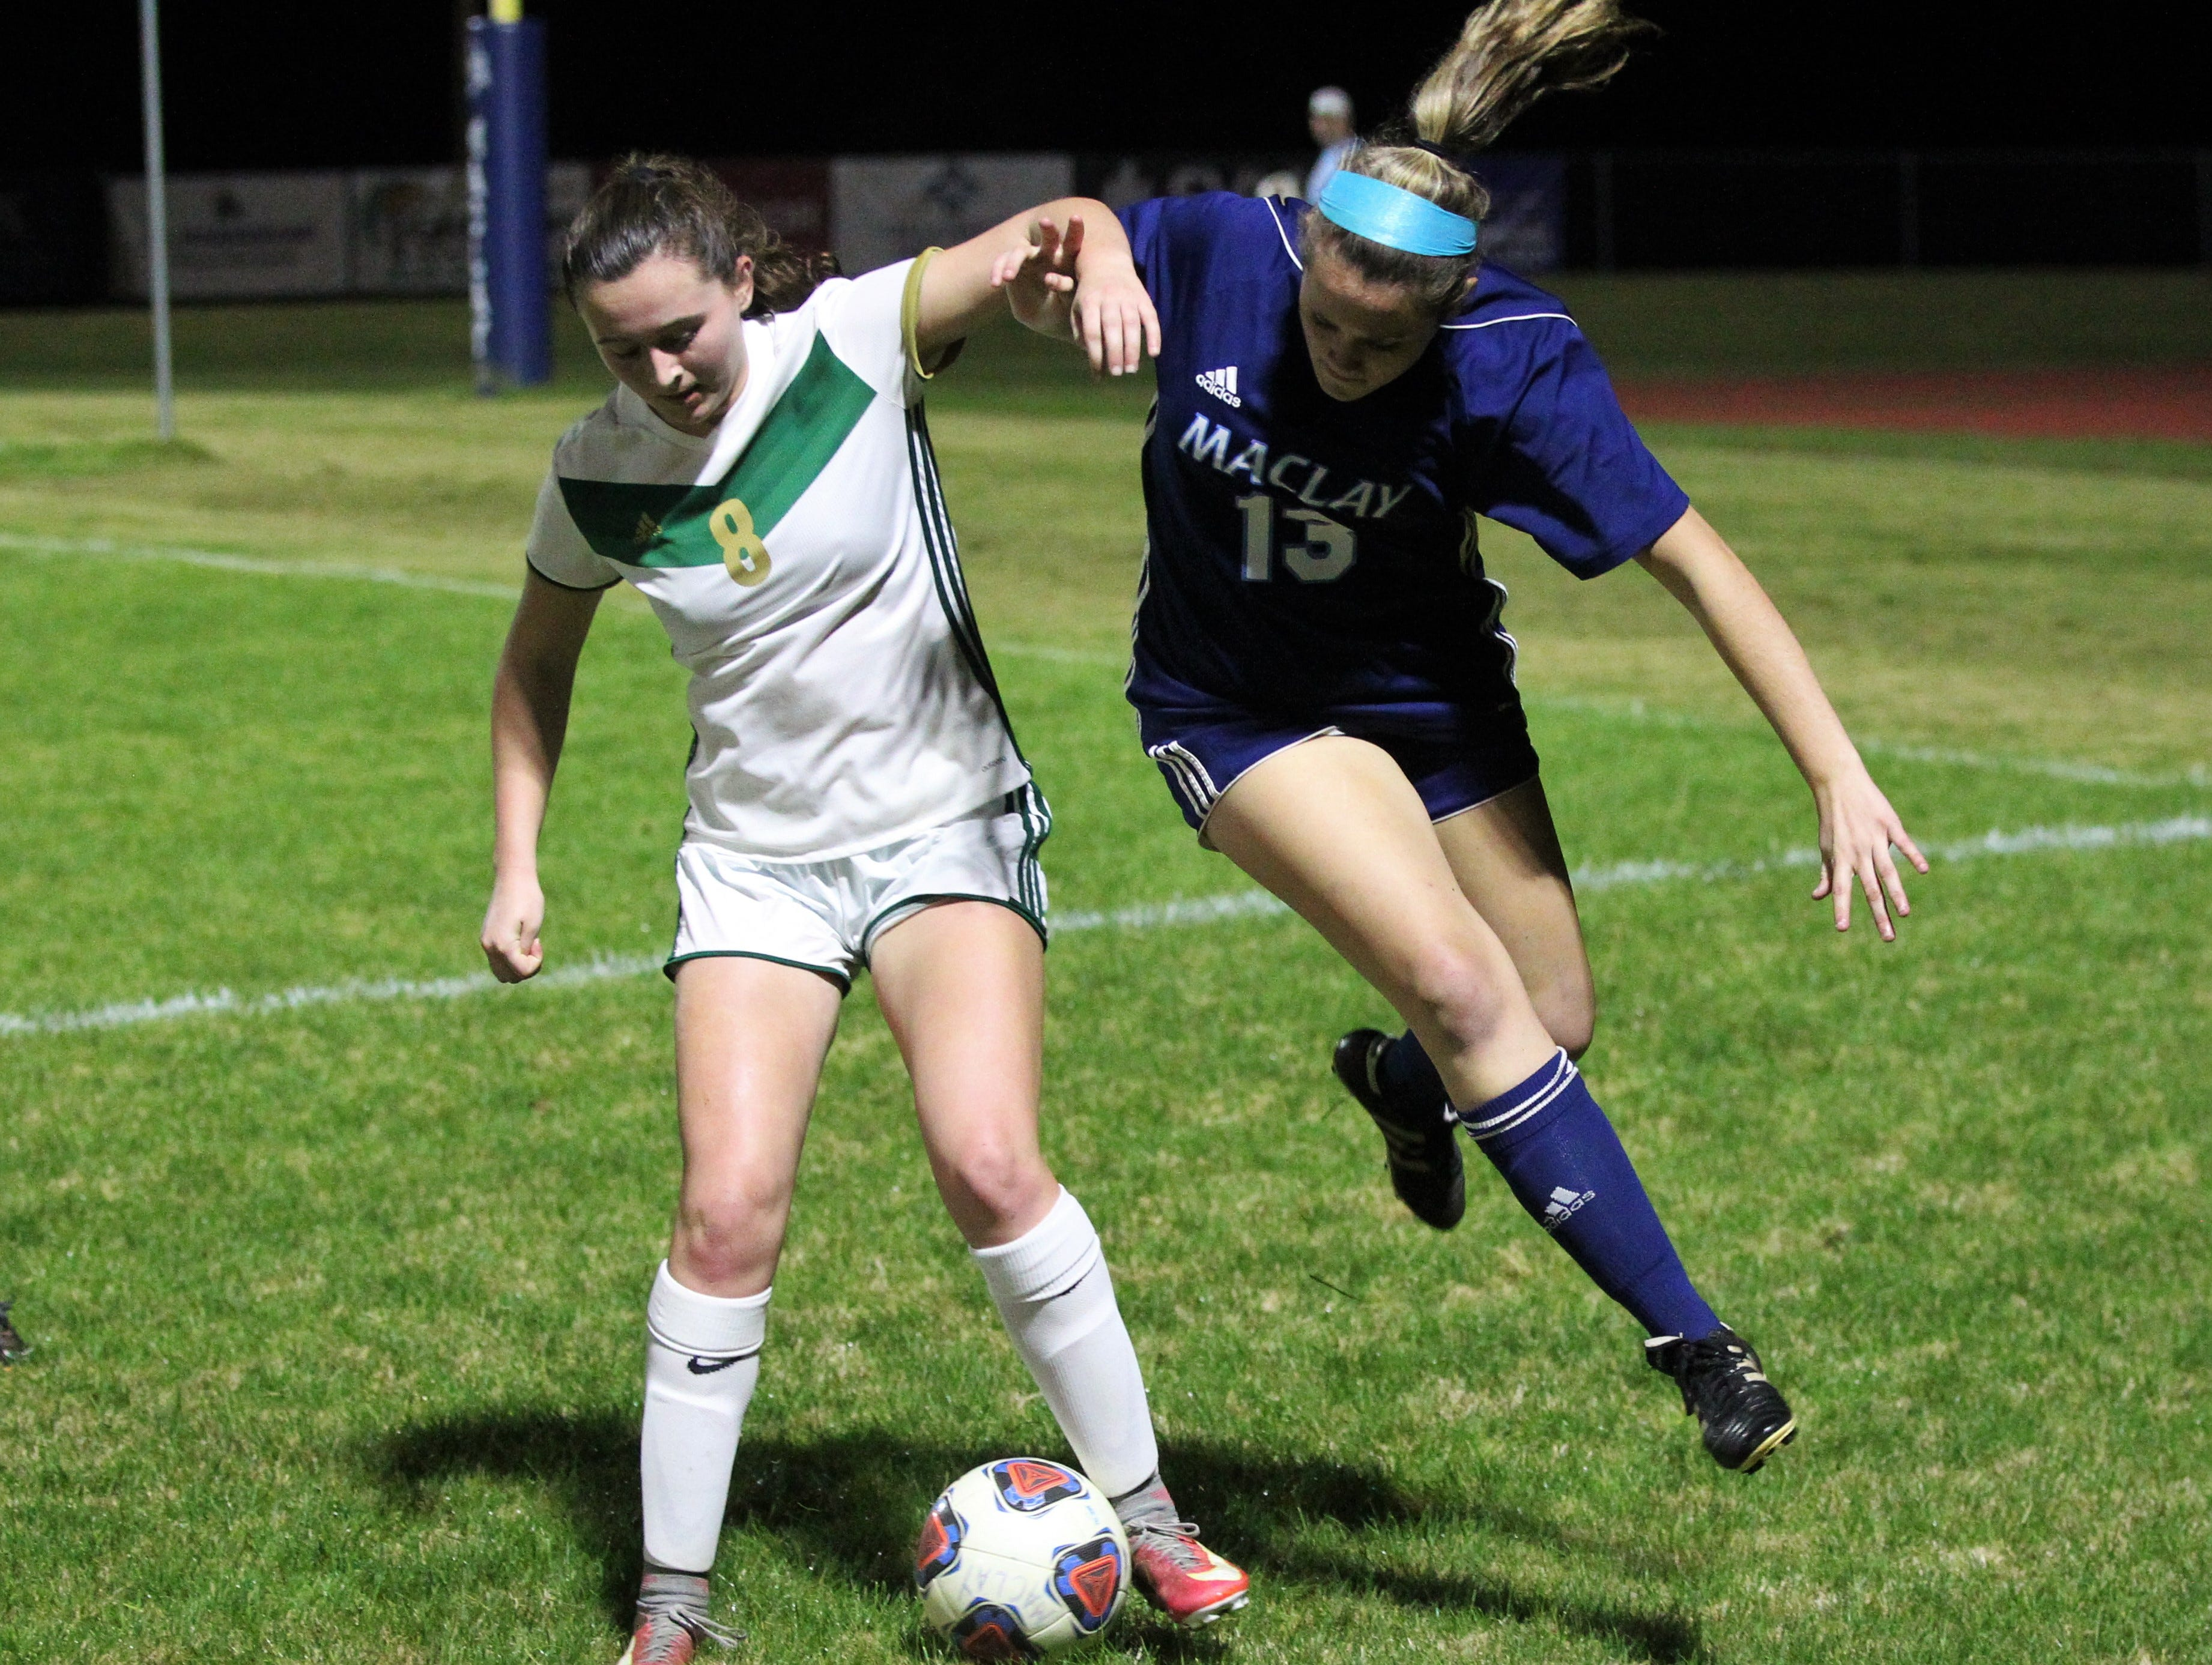 Maclay's Hailey Hobbs tries to steal a ball away from a defender as Maclay's girls soccer team beat St. Joseph Academy 4-0 in a Region 1-1A quarterfinal on Jan. 5, 2019.